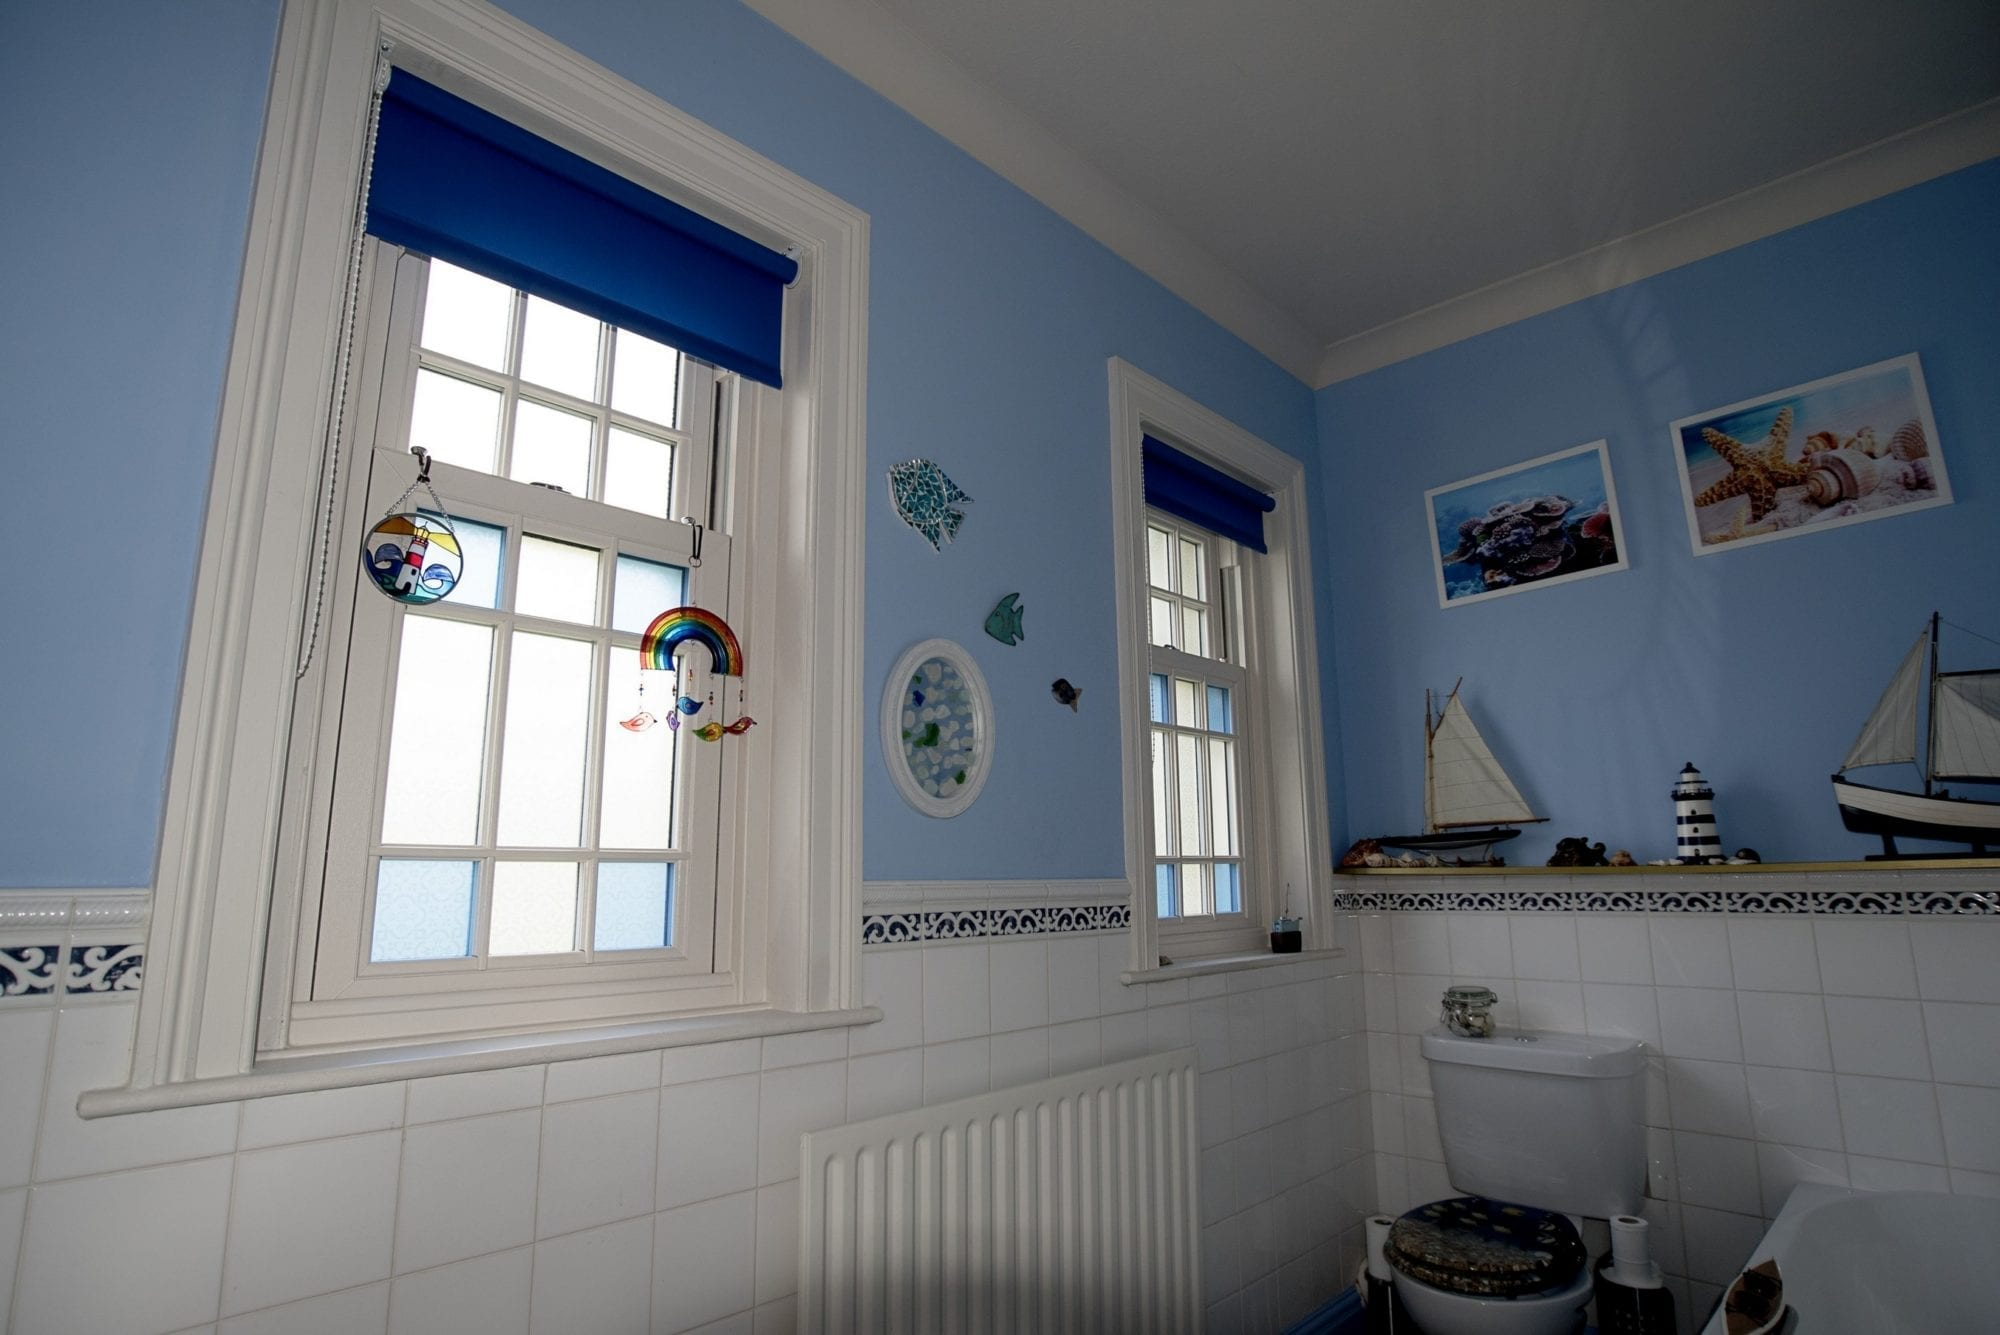 Sash Windows in Bathroom